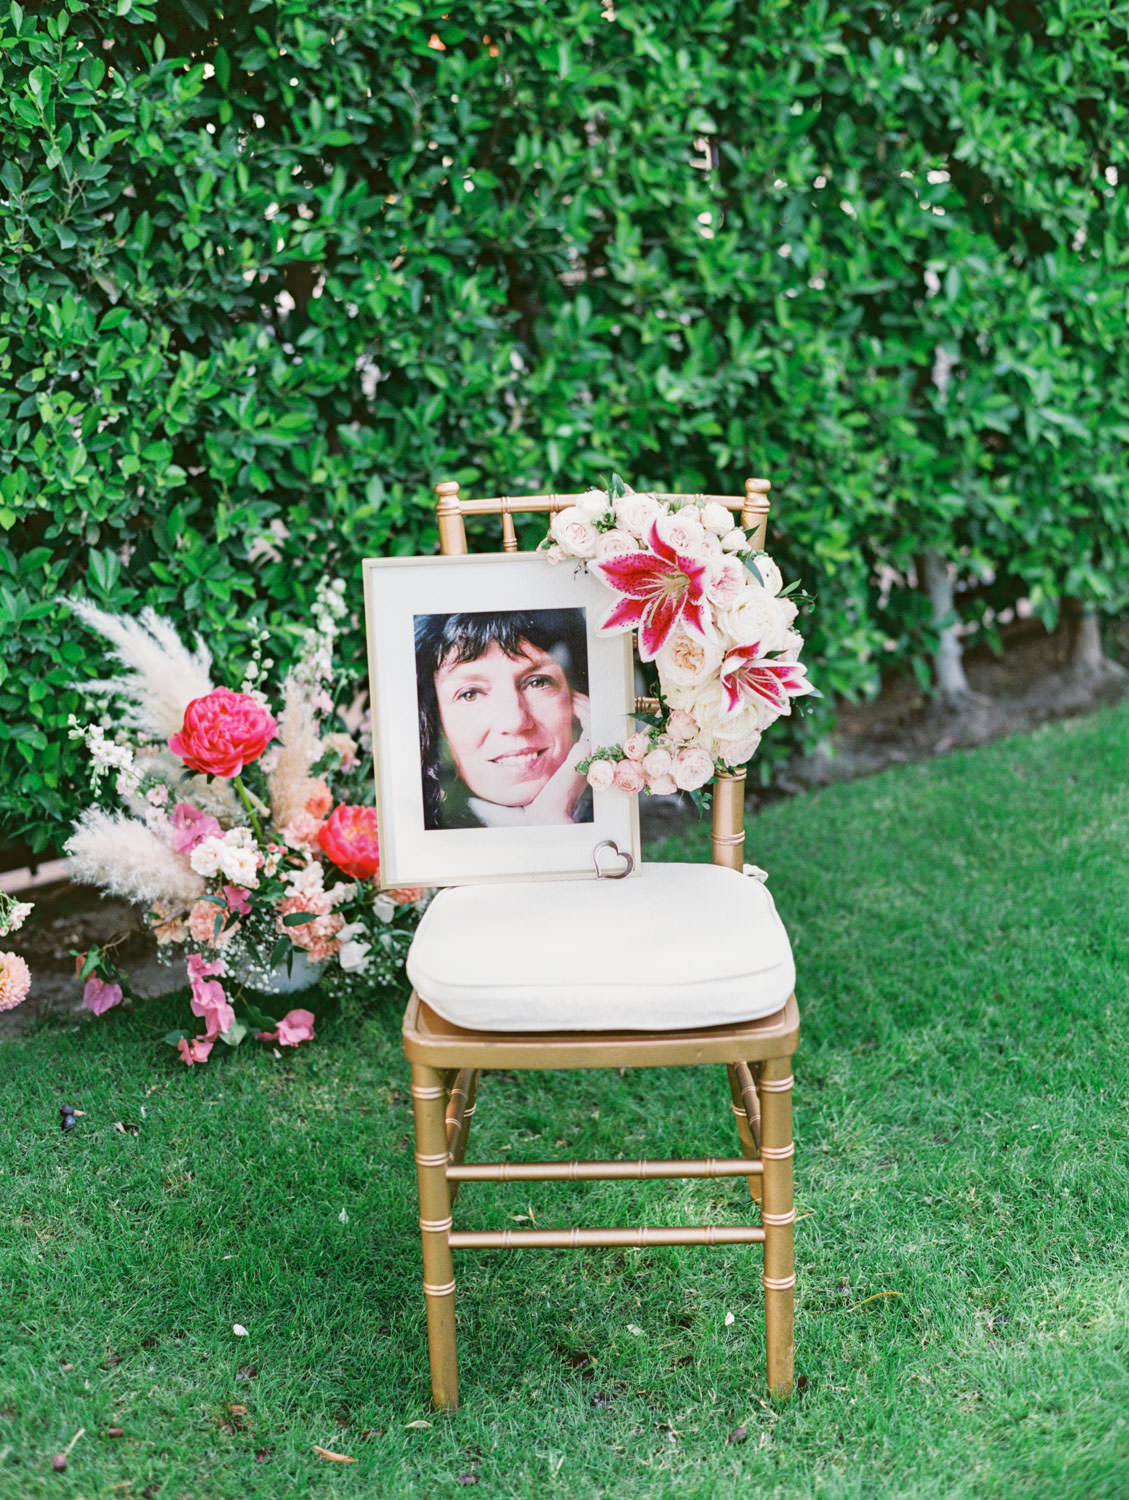 Framed portrait of the bride's deceased mother sitting on a chiavari chair with floral arrangements. Film photography by Cavin Elizabeth.